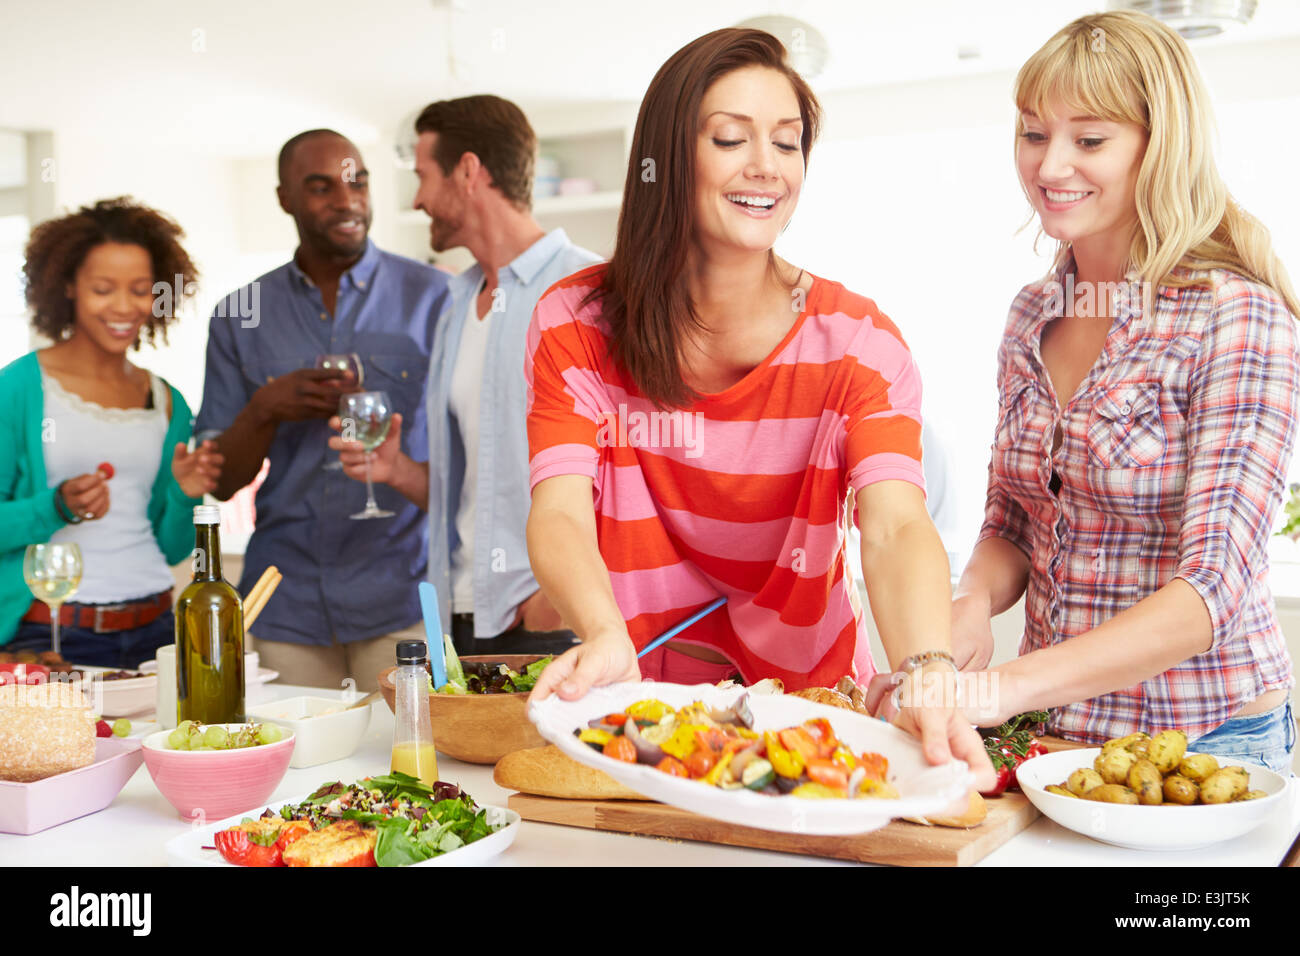 Group Of Friends Having Dinner Party At Home - Stock Image